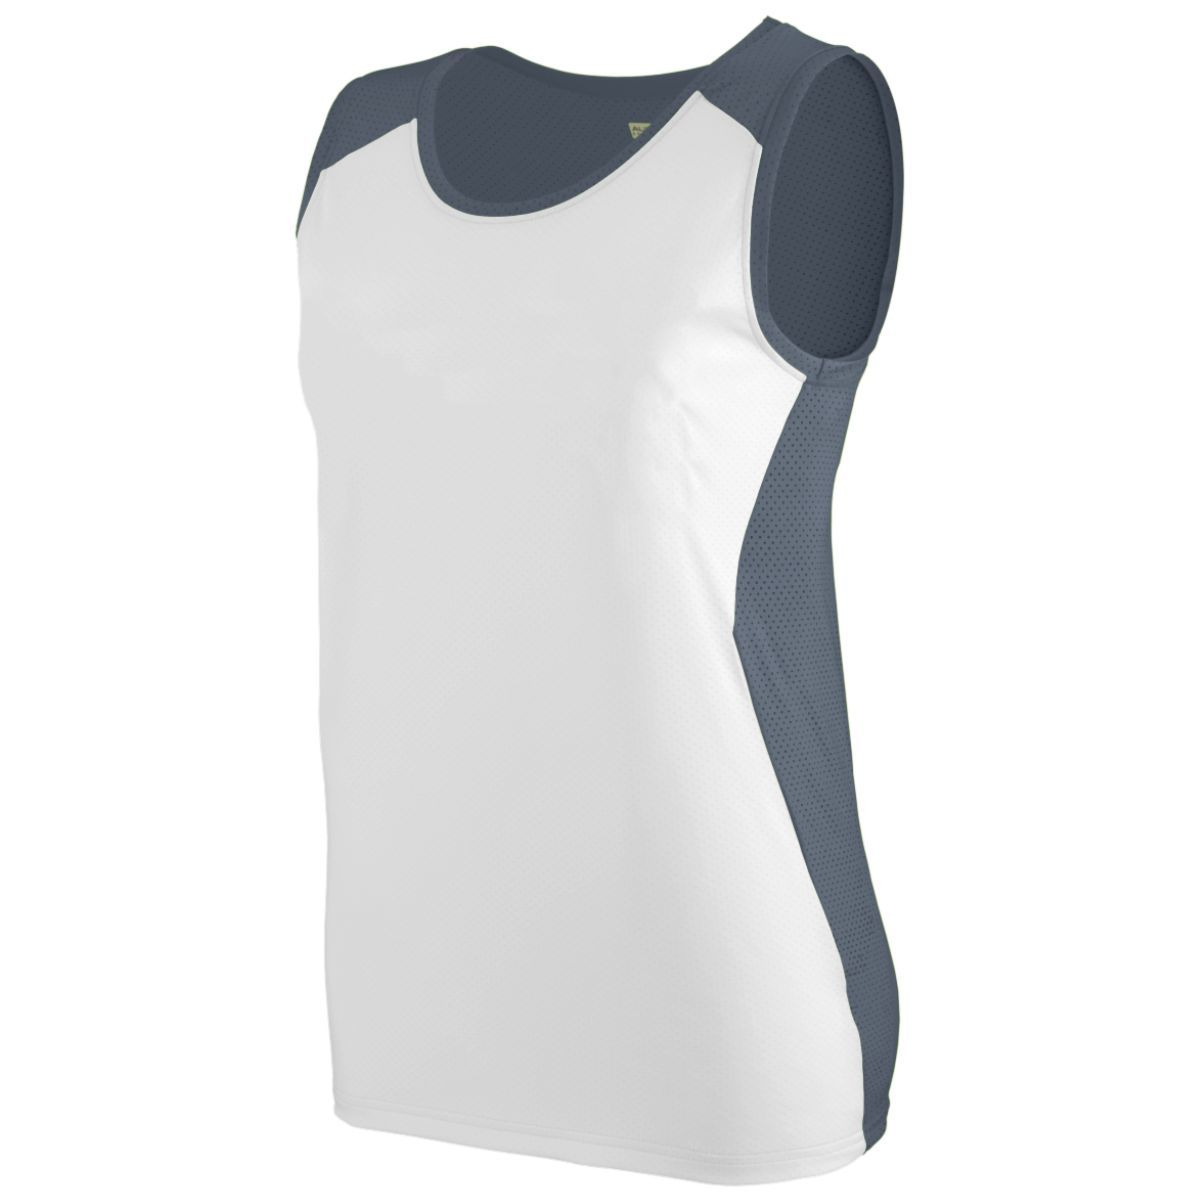 Ladies Alize Jersey - GRAPHITE/WHITE